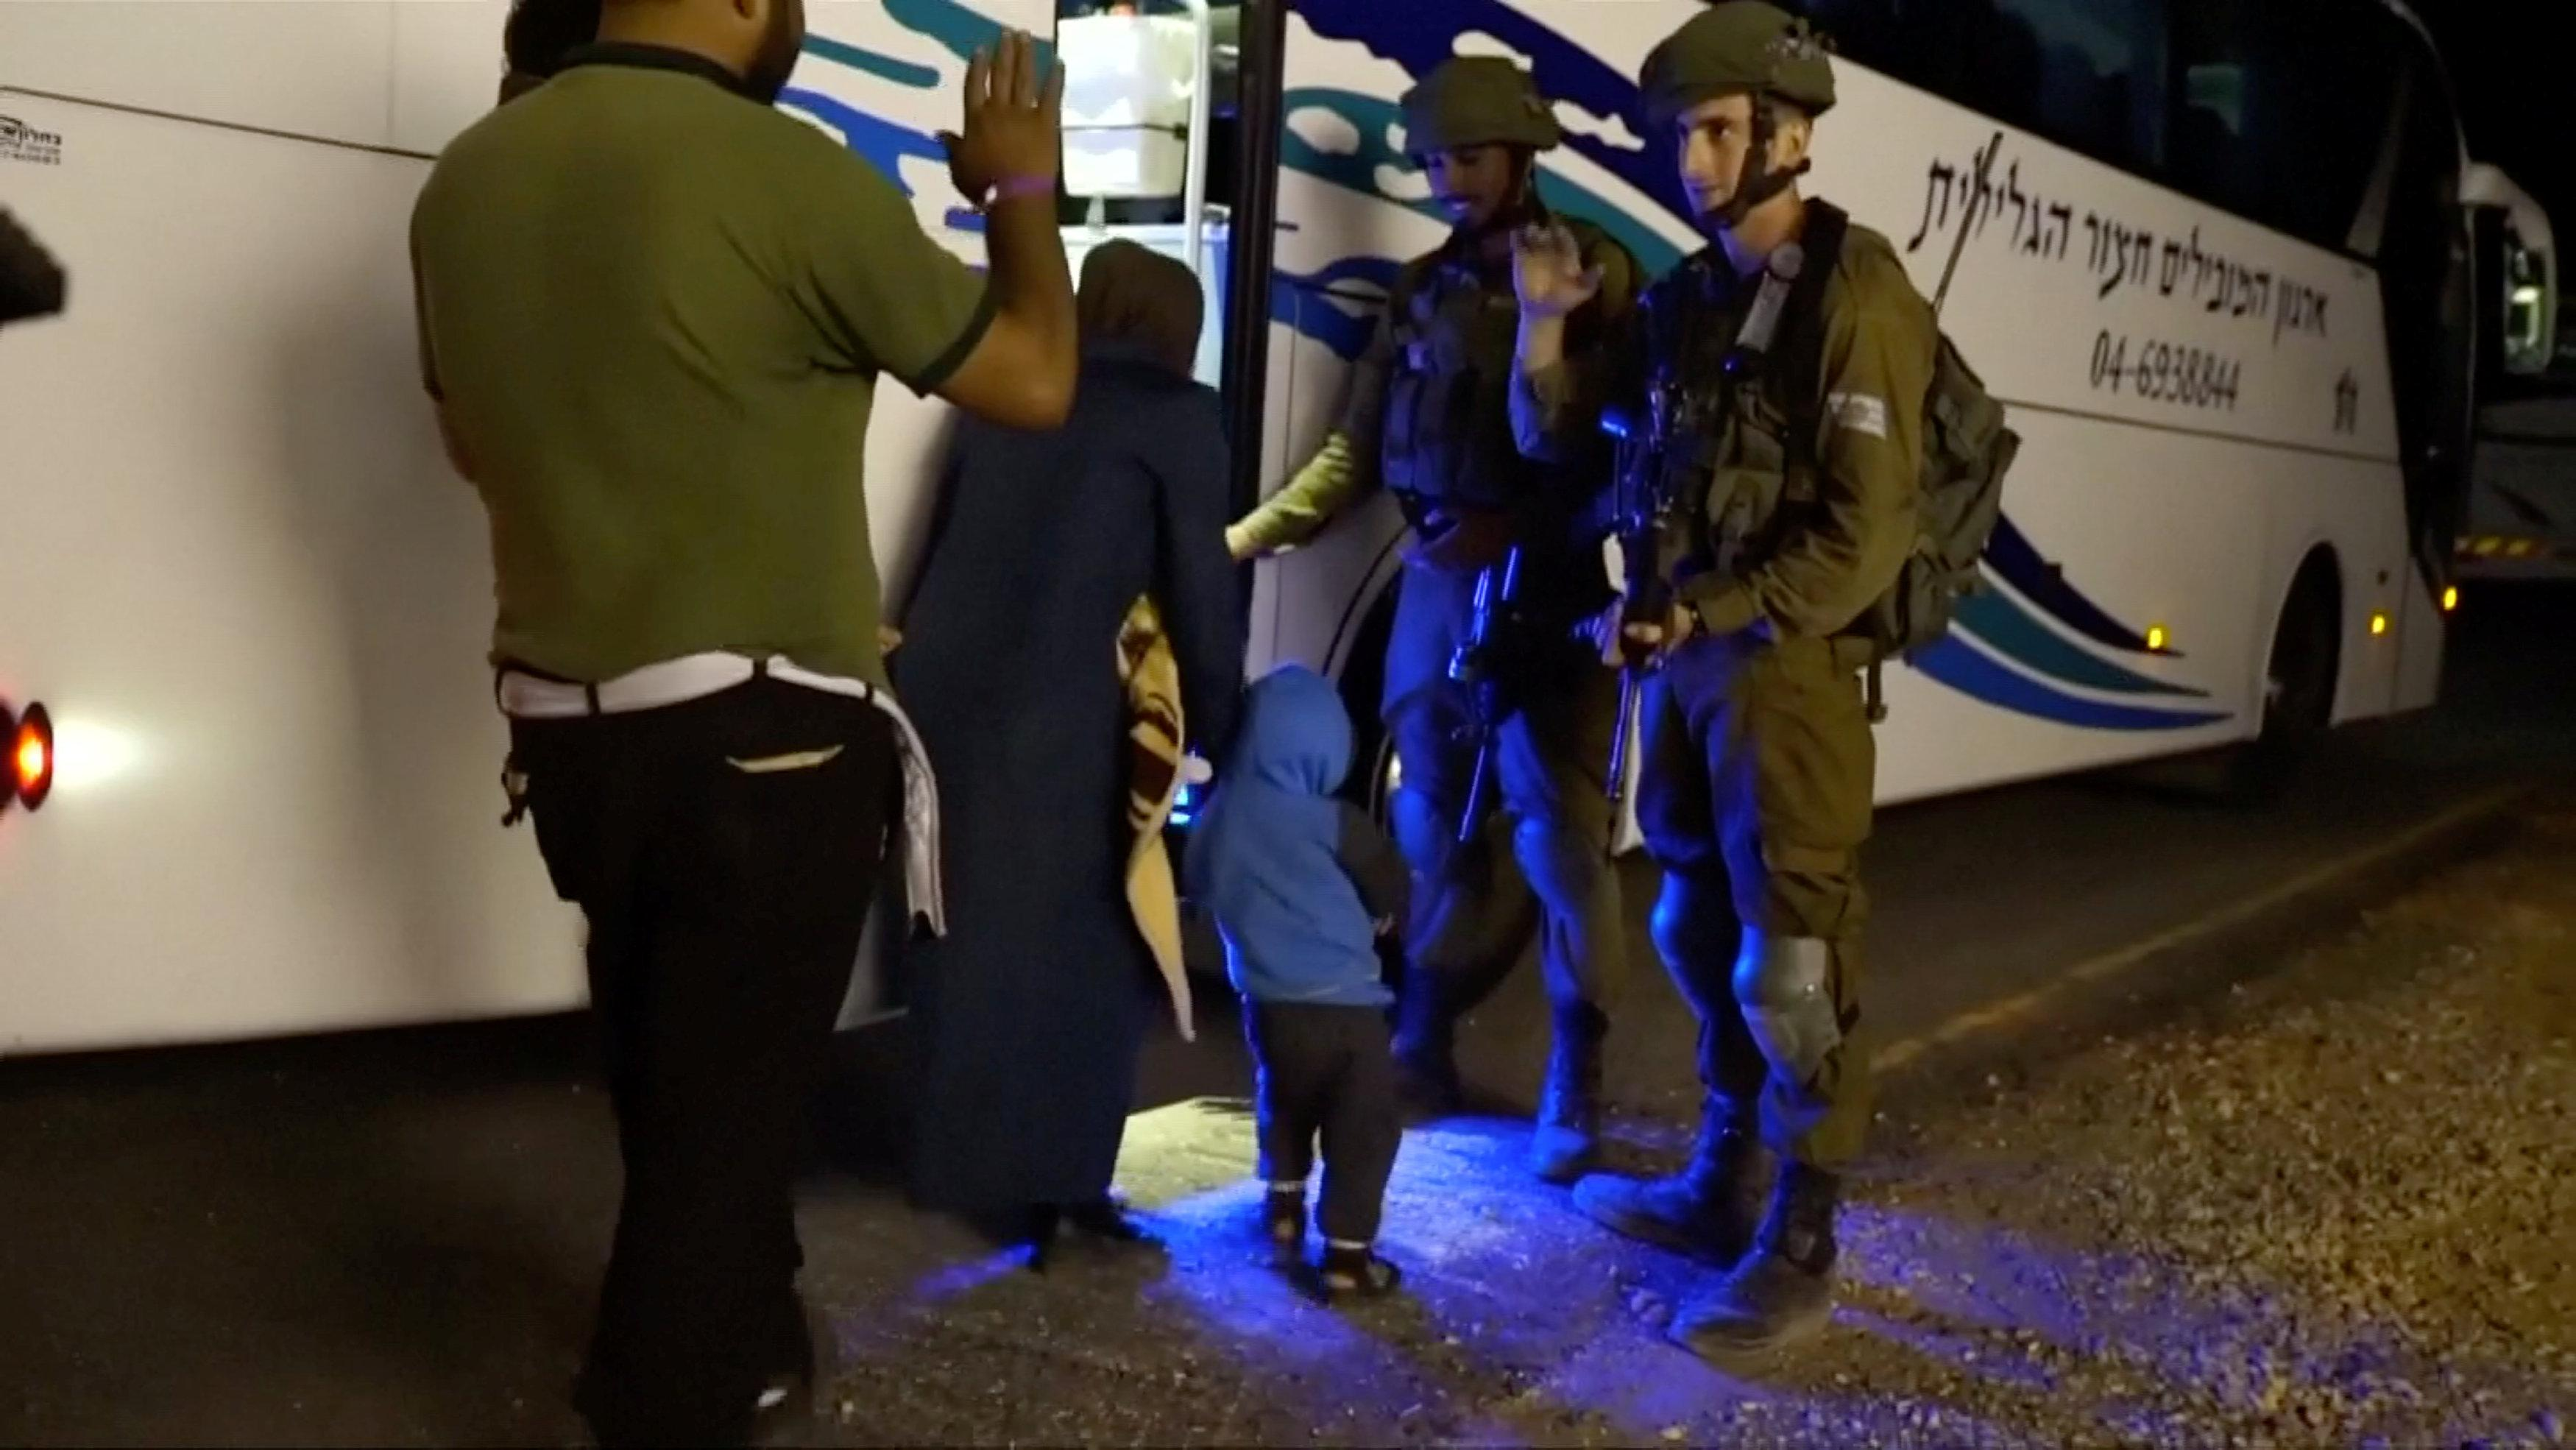 People walk past Israeli soldiers as they board a bus during the Syria Civil Defence, also known as the White Helmets, extraction from the Golan Heights, Israel in this still image taken from video, provided by the Israeli Army July 22, 2018. Israeli Army Handout via